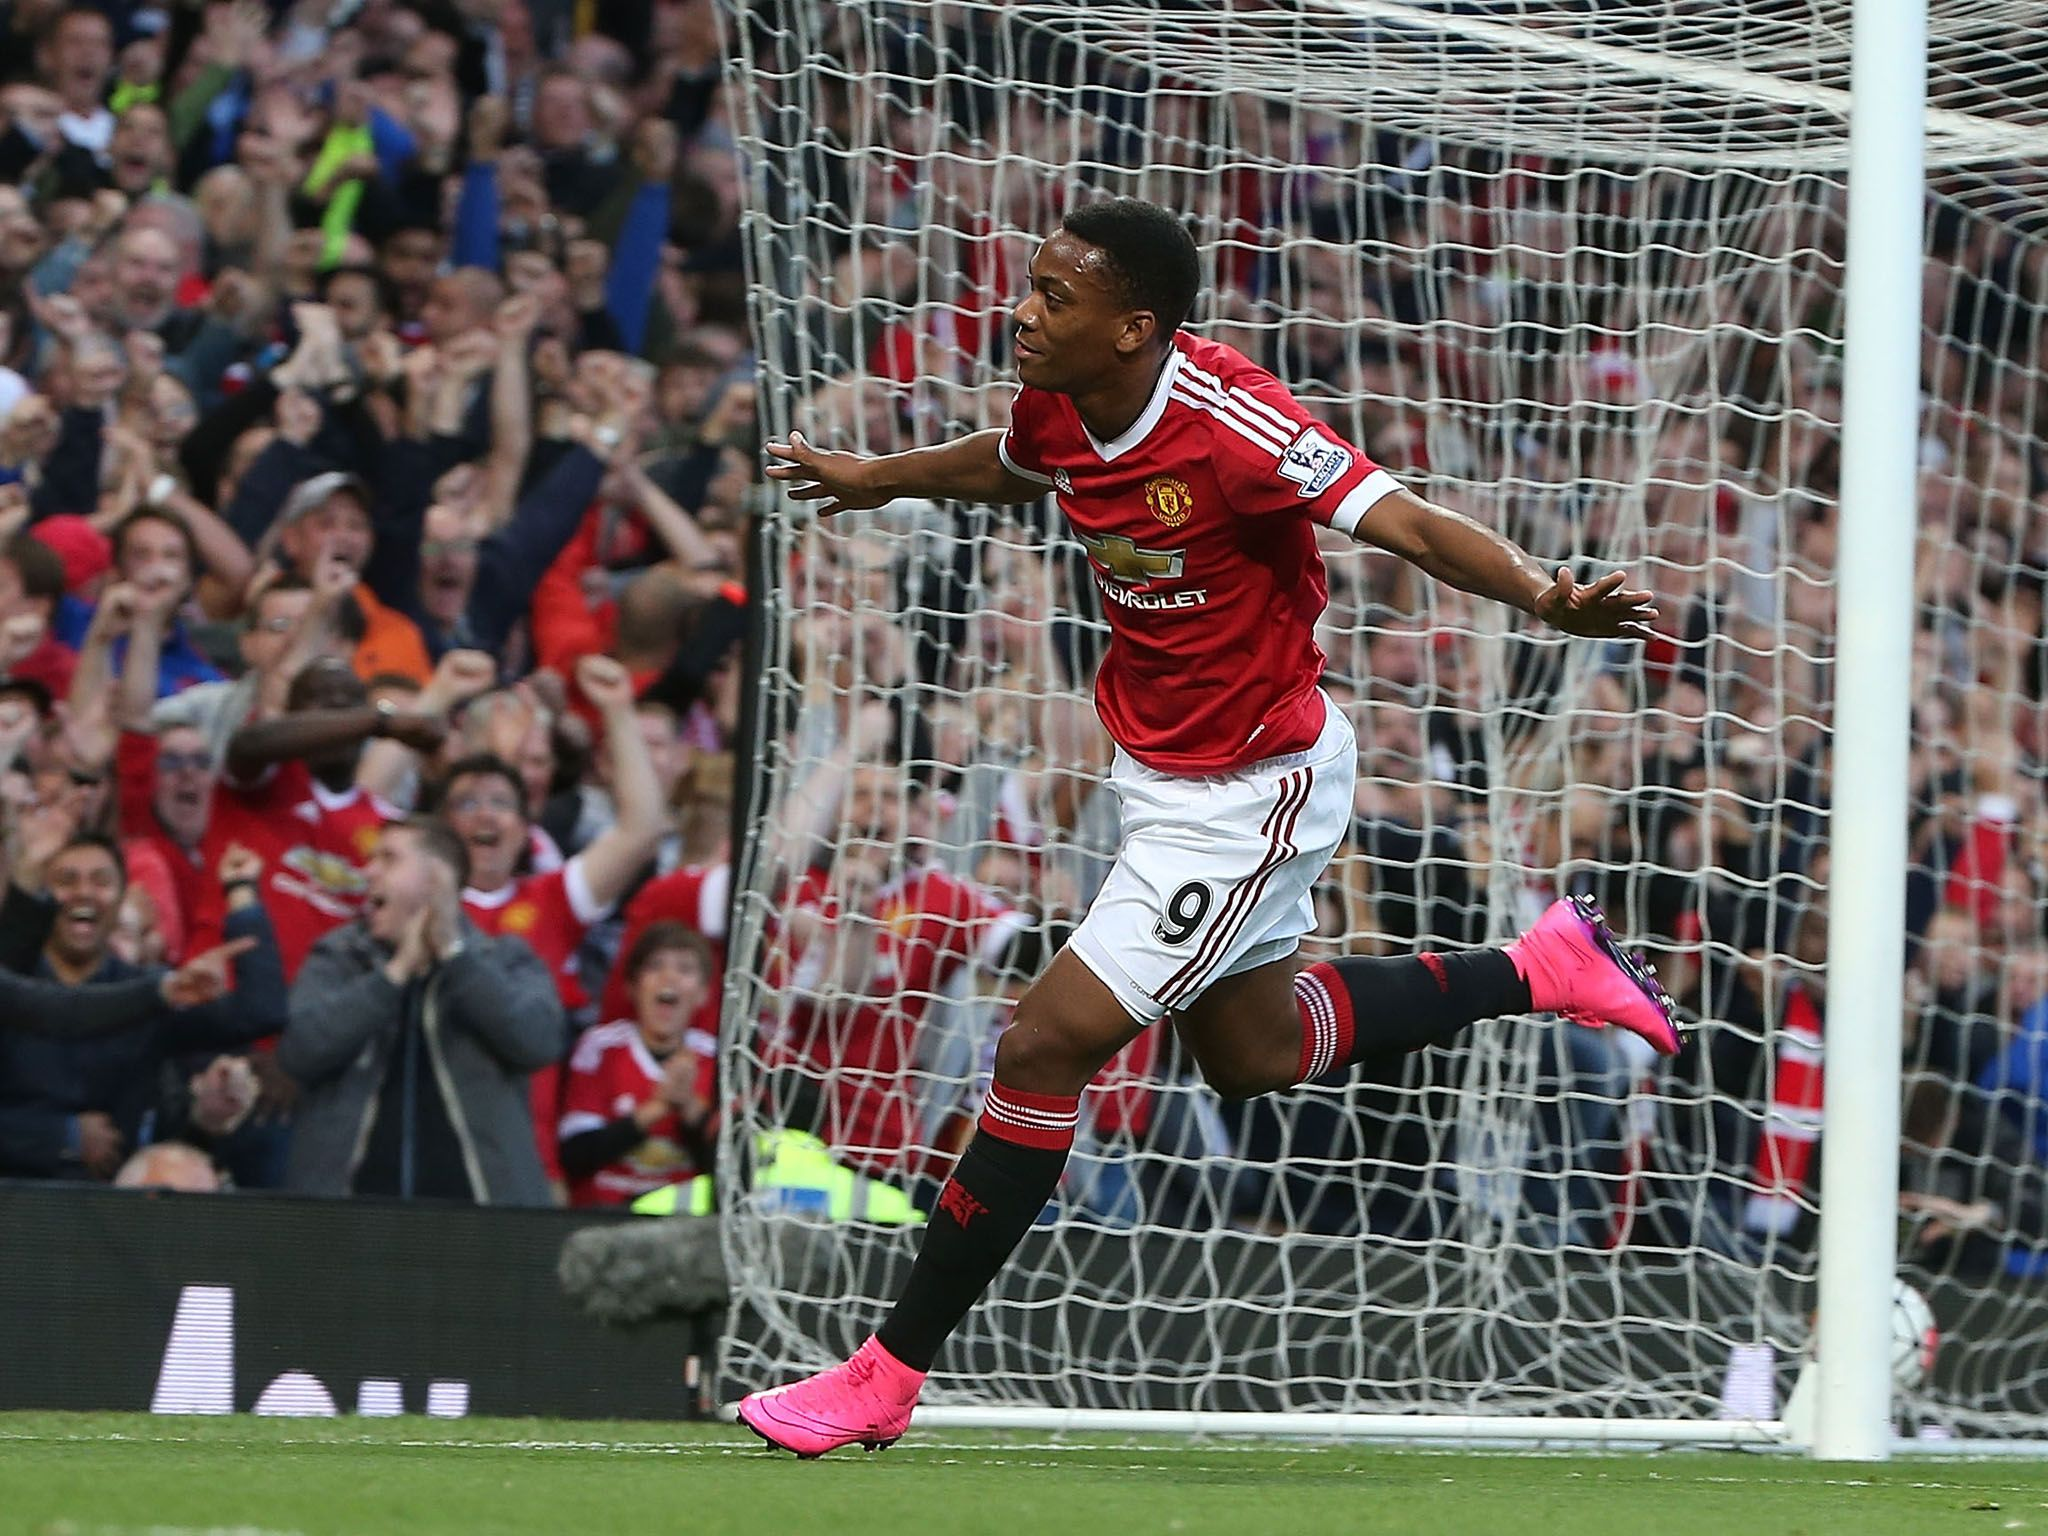 Match report Manchester United 3 Liverpool 1 Sky sports